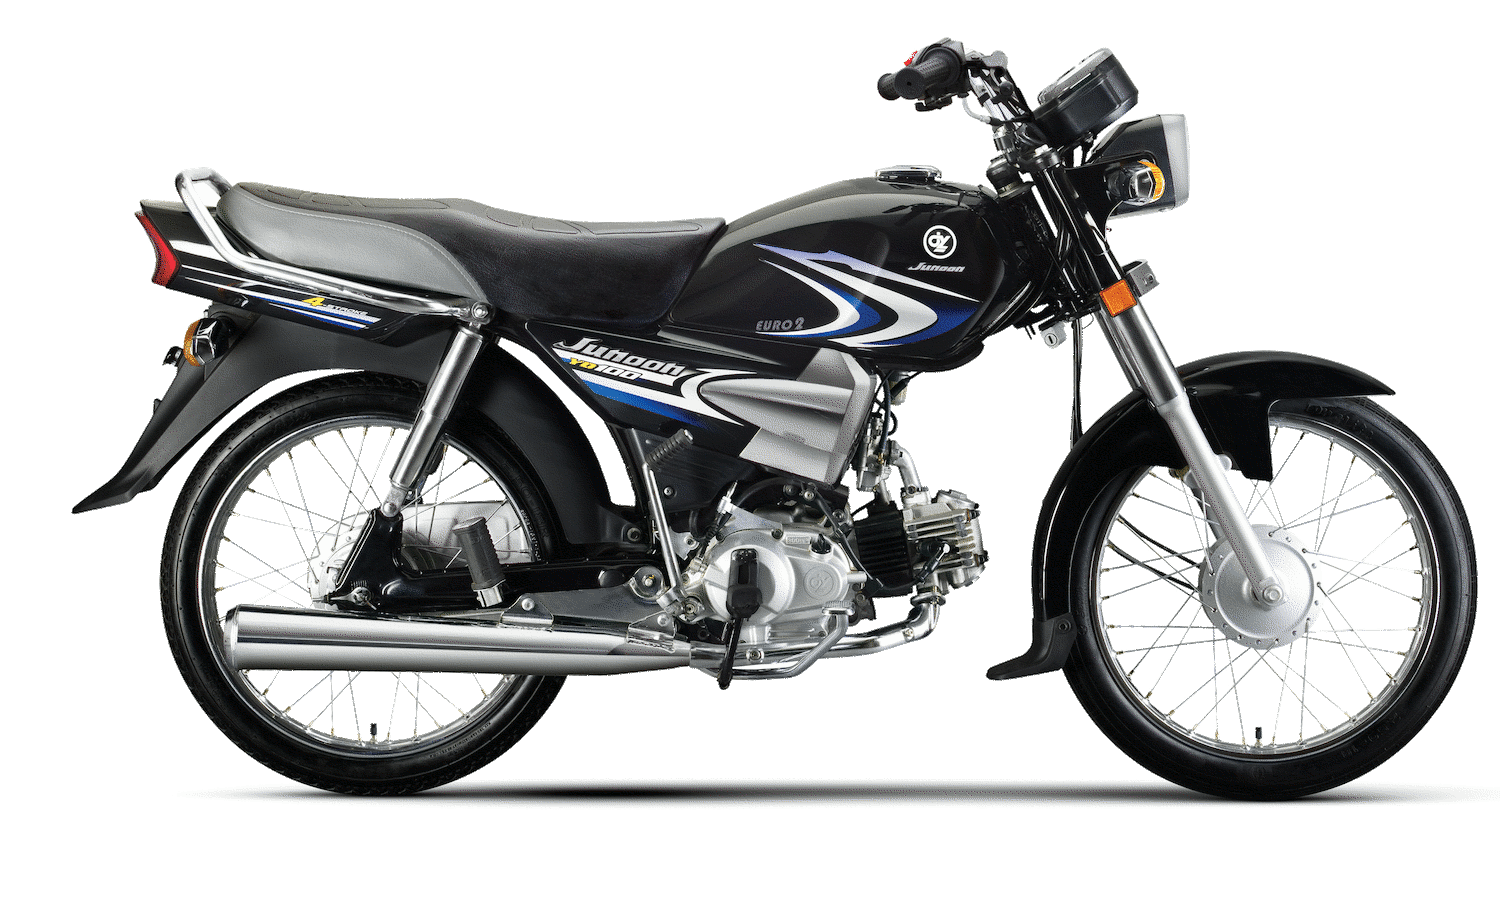 Moto Png Image Motorcycle Png Picture Download PNG Image - Bikers PNG HD